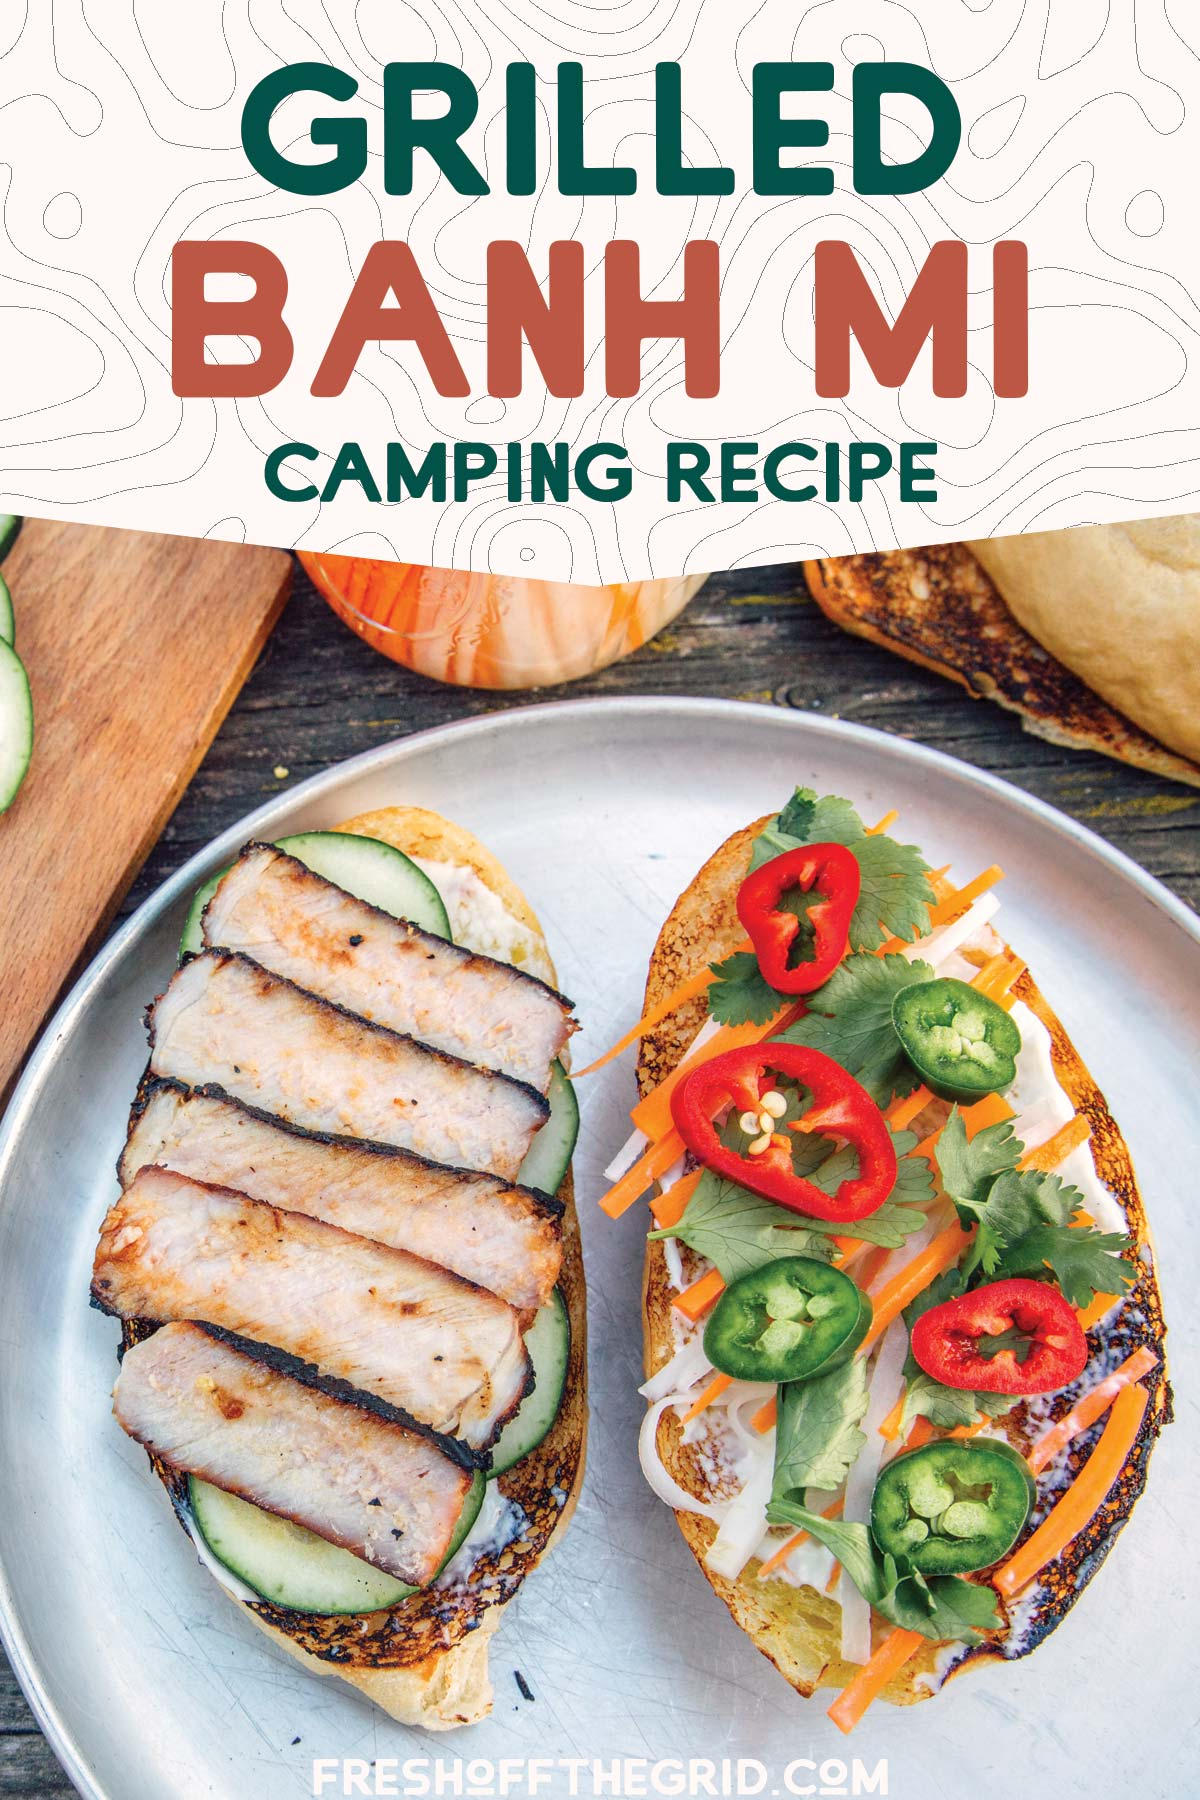 Soft baguette bread, smoky and sweet pork, spicy jalapenos, and tangy pickled vegetables, this campfire Bánh Mì takes camping sandwiches to a new level. Pick up your car camping lunch game and give this recipe a try! via @freshoffthegrid